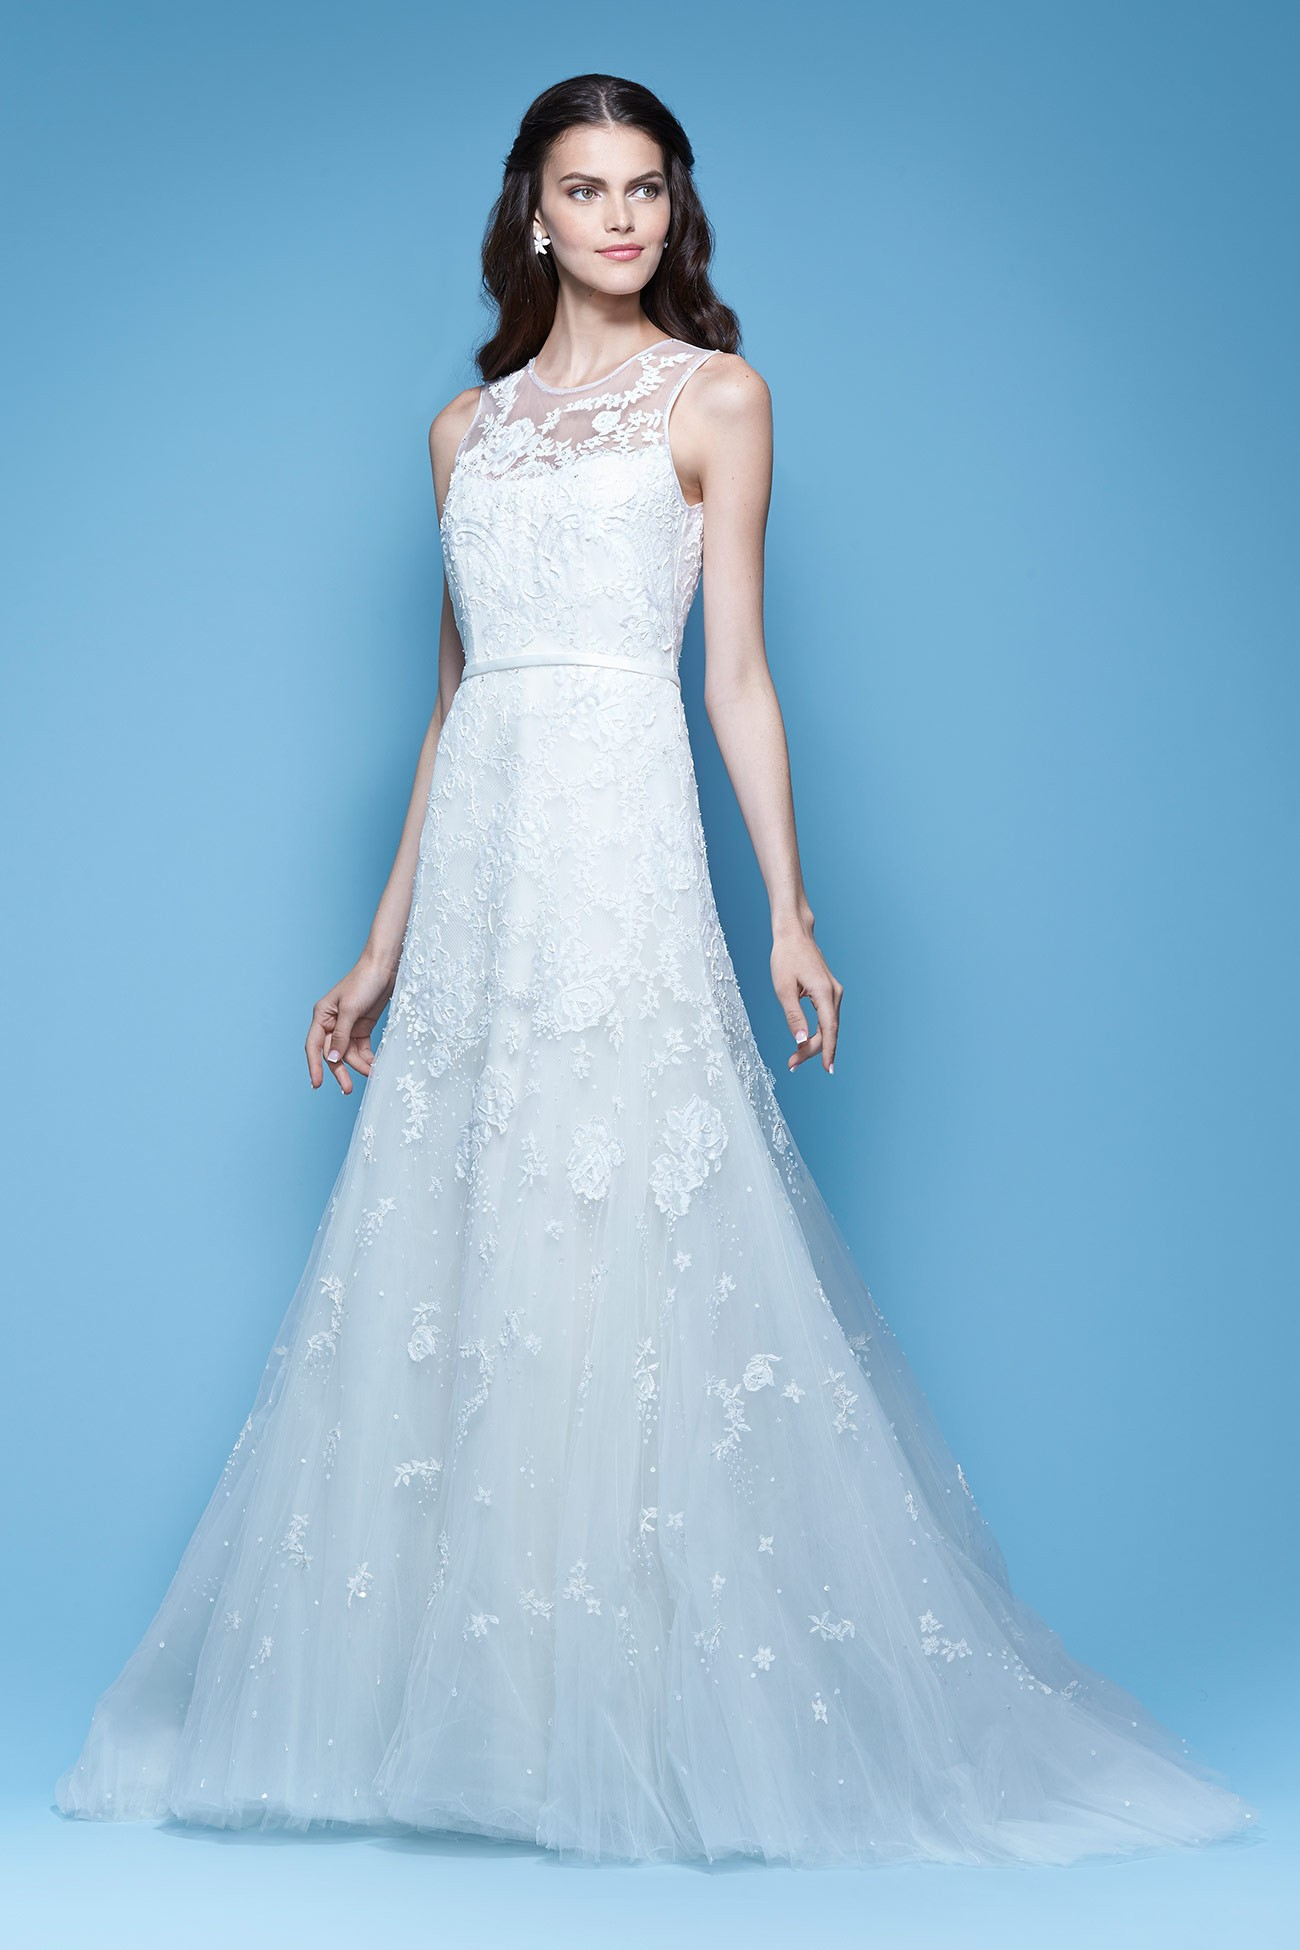 Whimsical Brides and Playful Details – Carolina Herrera Bridal Gowns ...